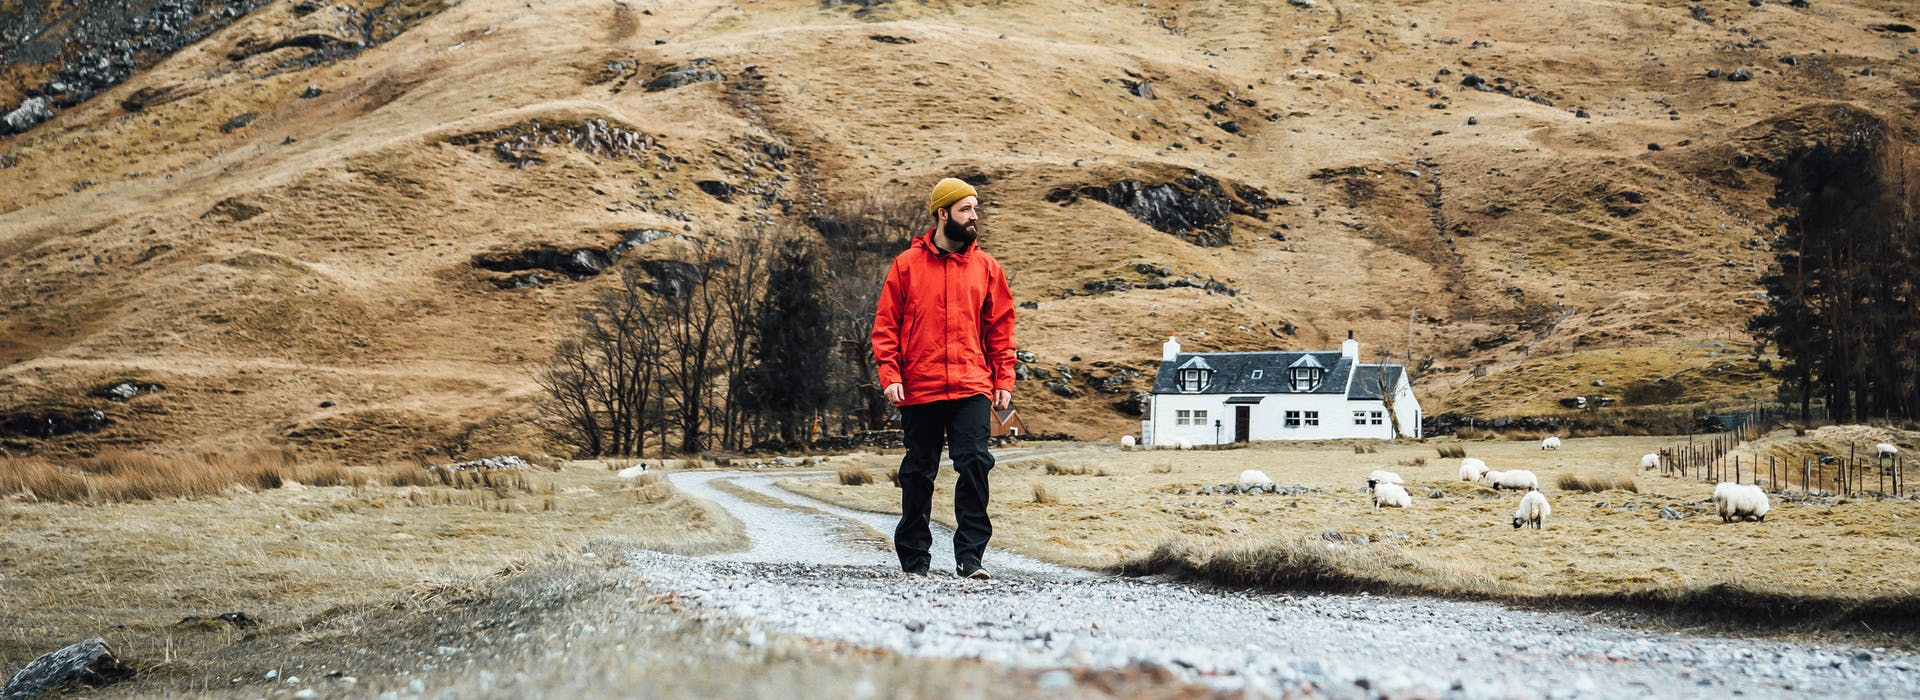 Road tripping the NC500